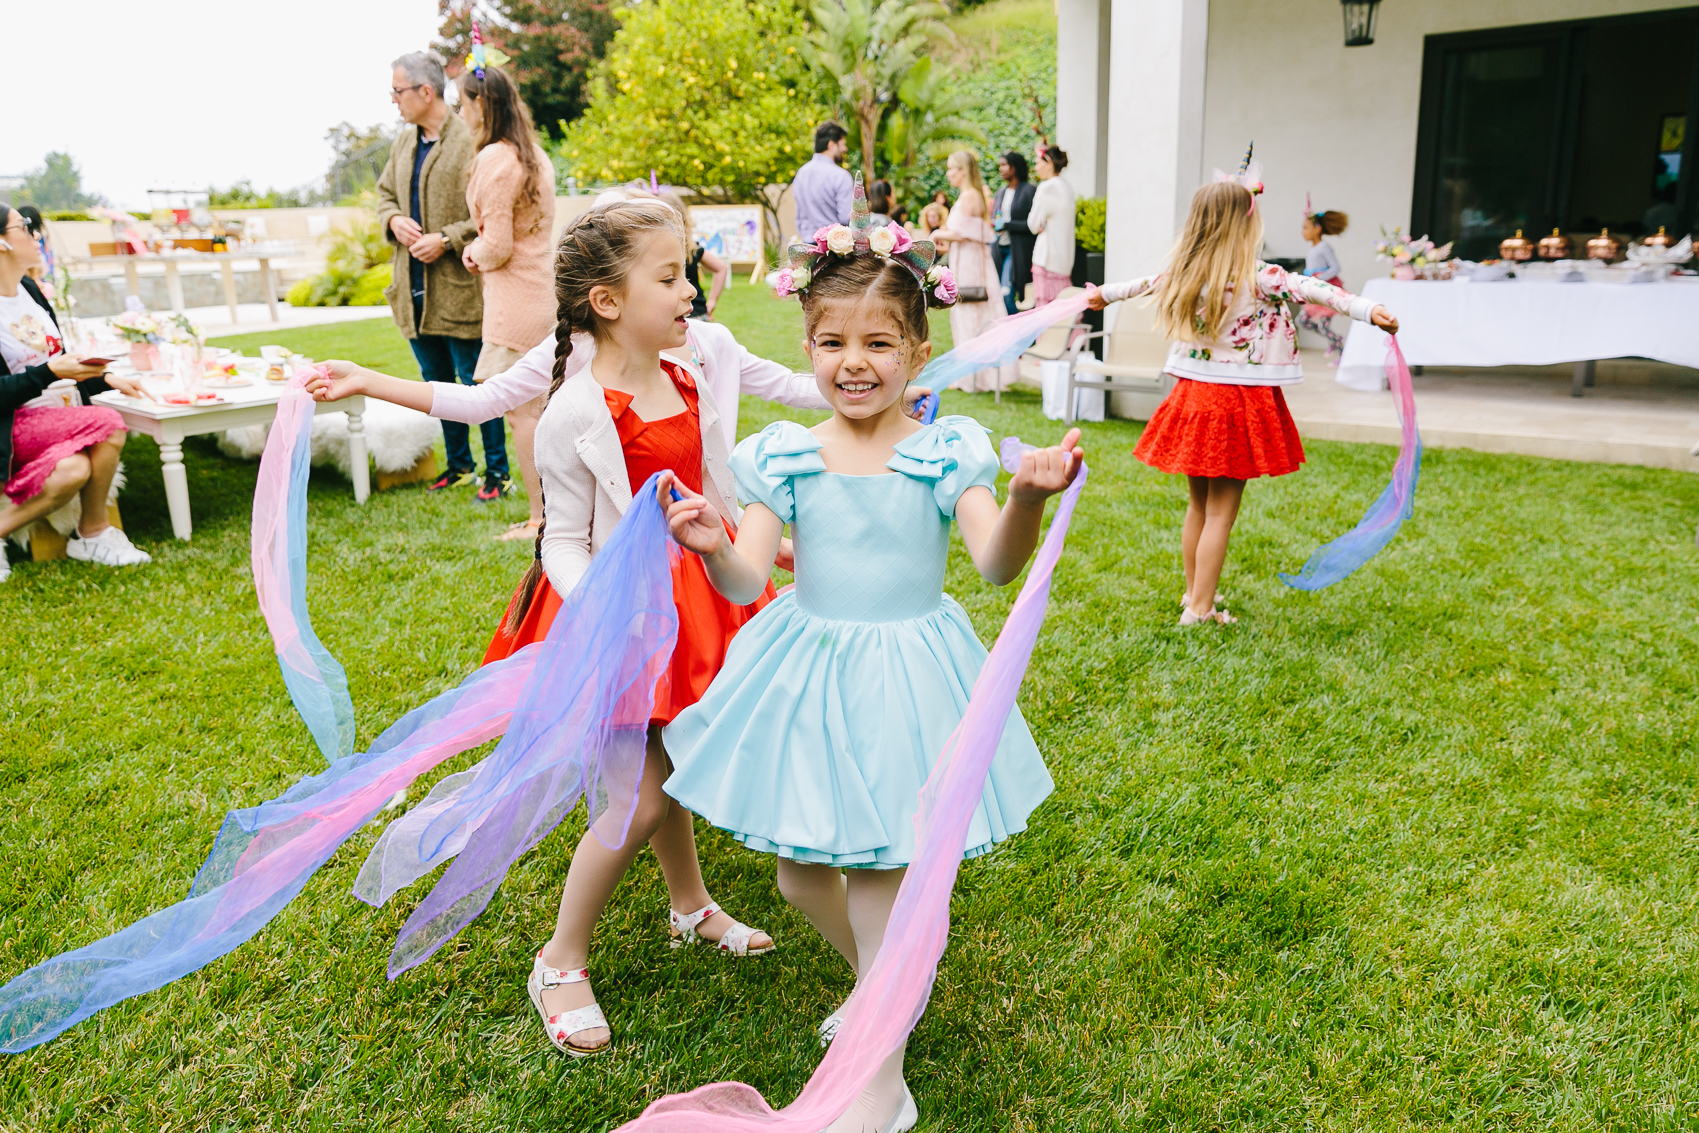 Los_Angeles_Family_Photographer_Luxury_Childrens_Party_Beverly_Hills_Unicorn_Birthday_Party-1248.jpg